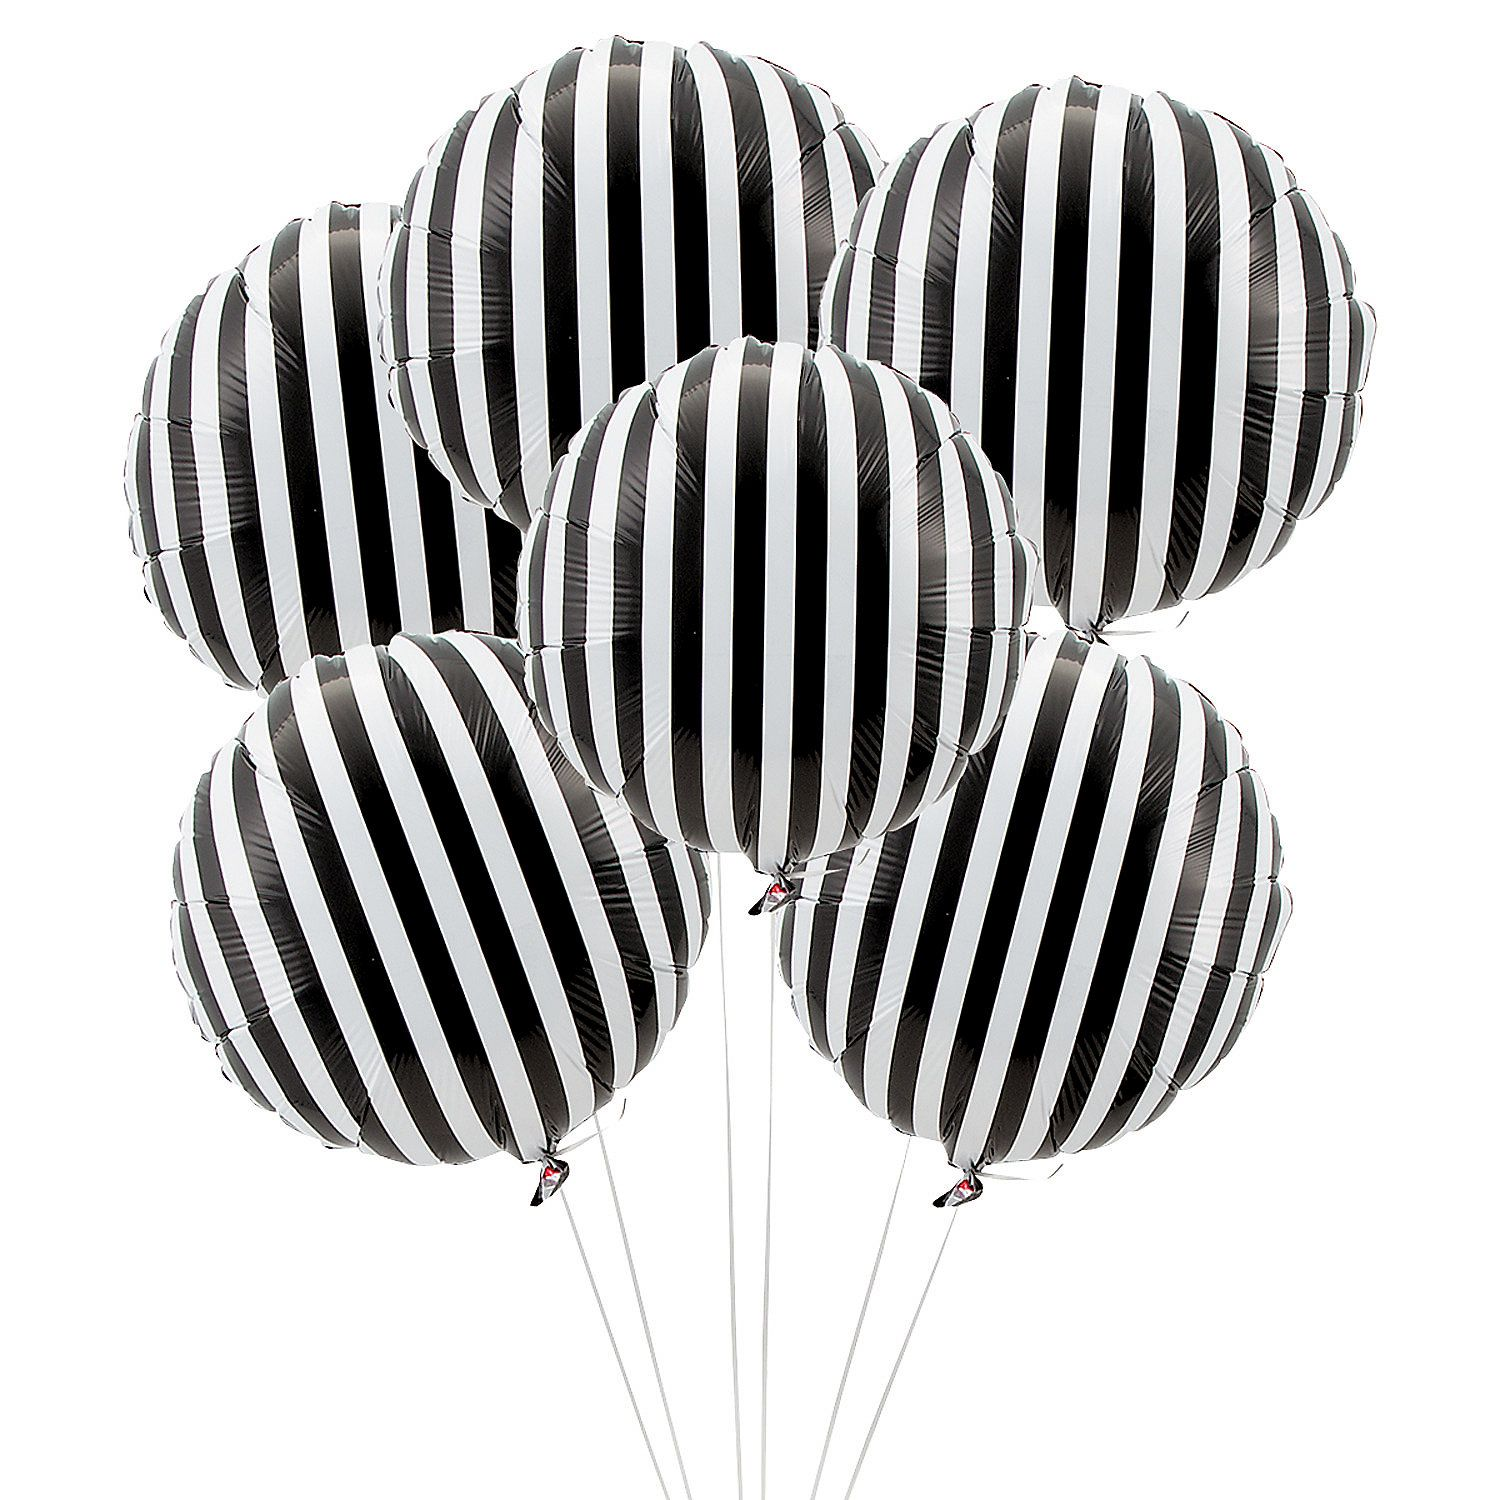 fabulous black and white striped balloons how cool would these be for your wedding